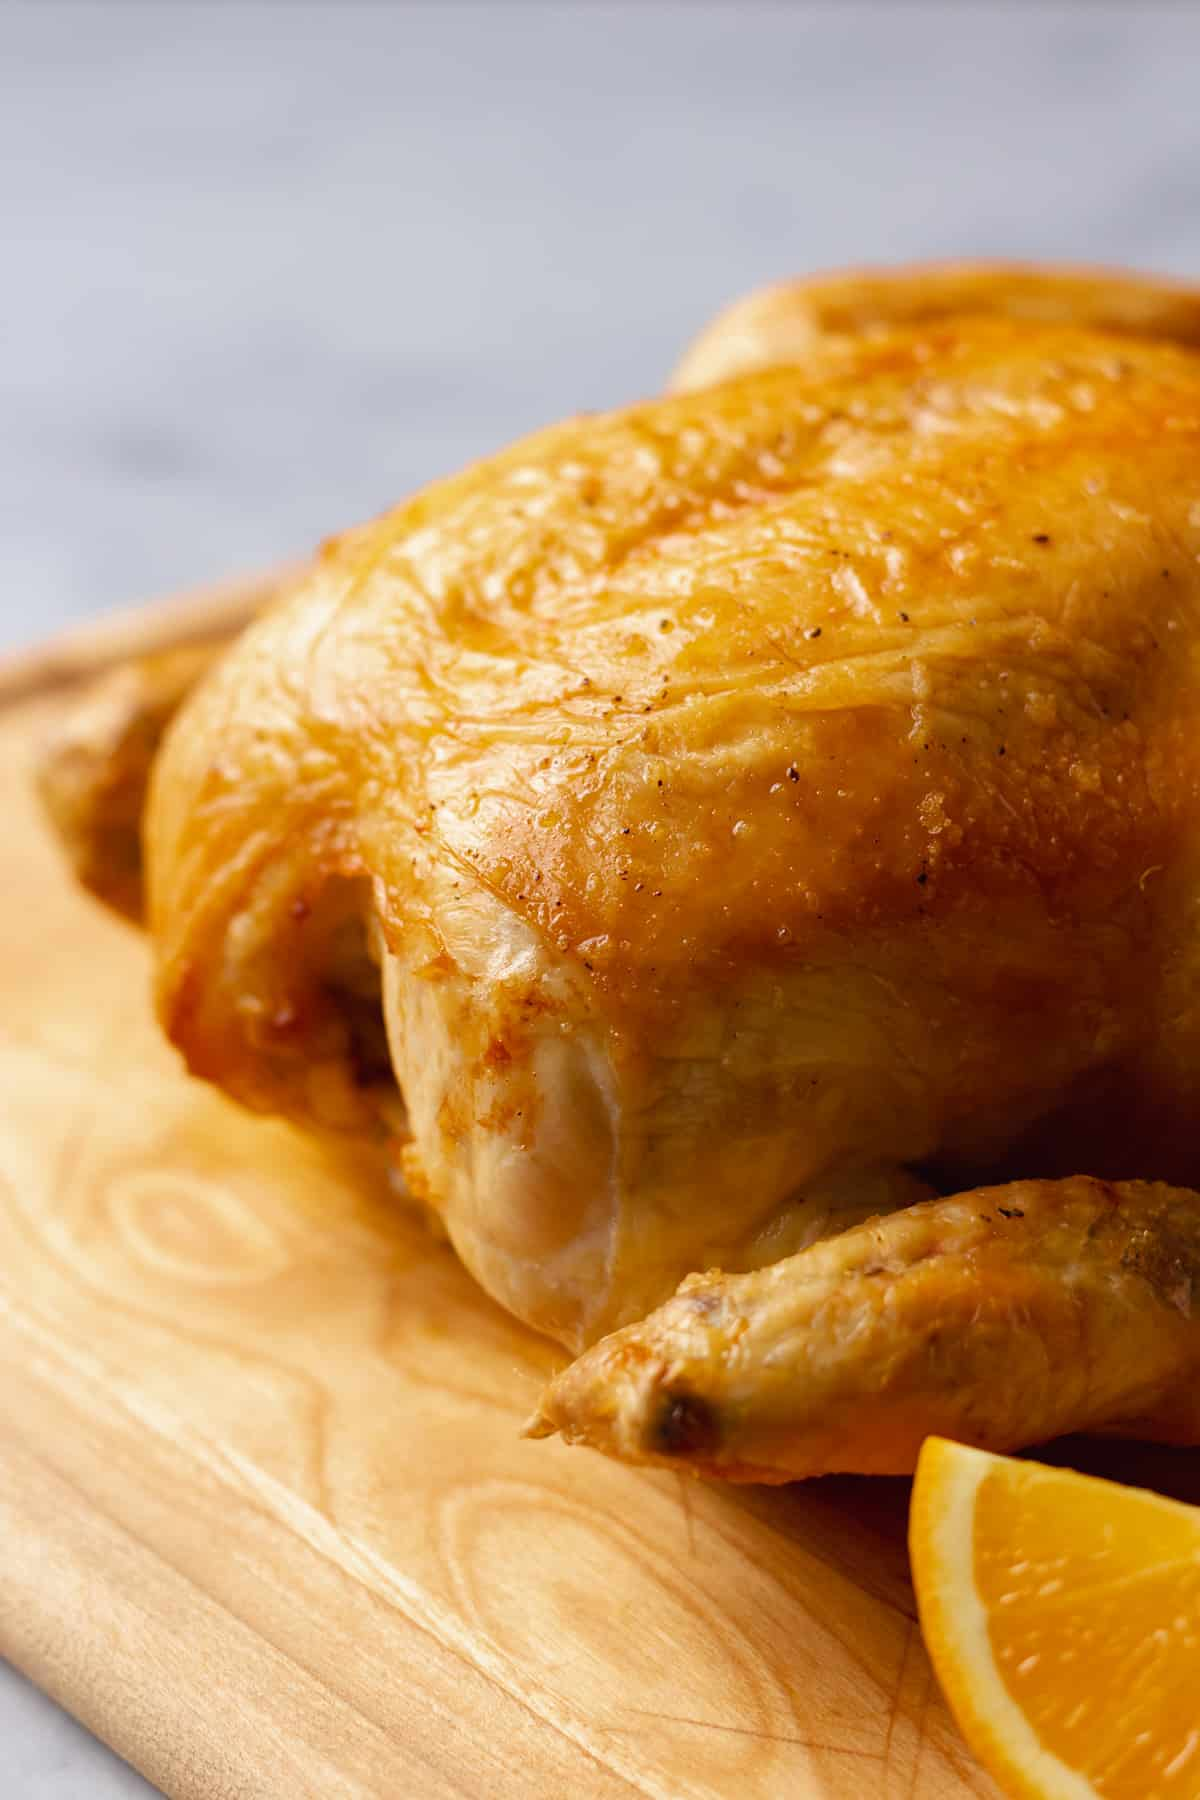 whole roasted chicken on a wooden cutting board